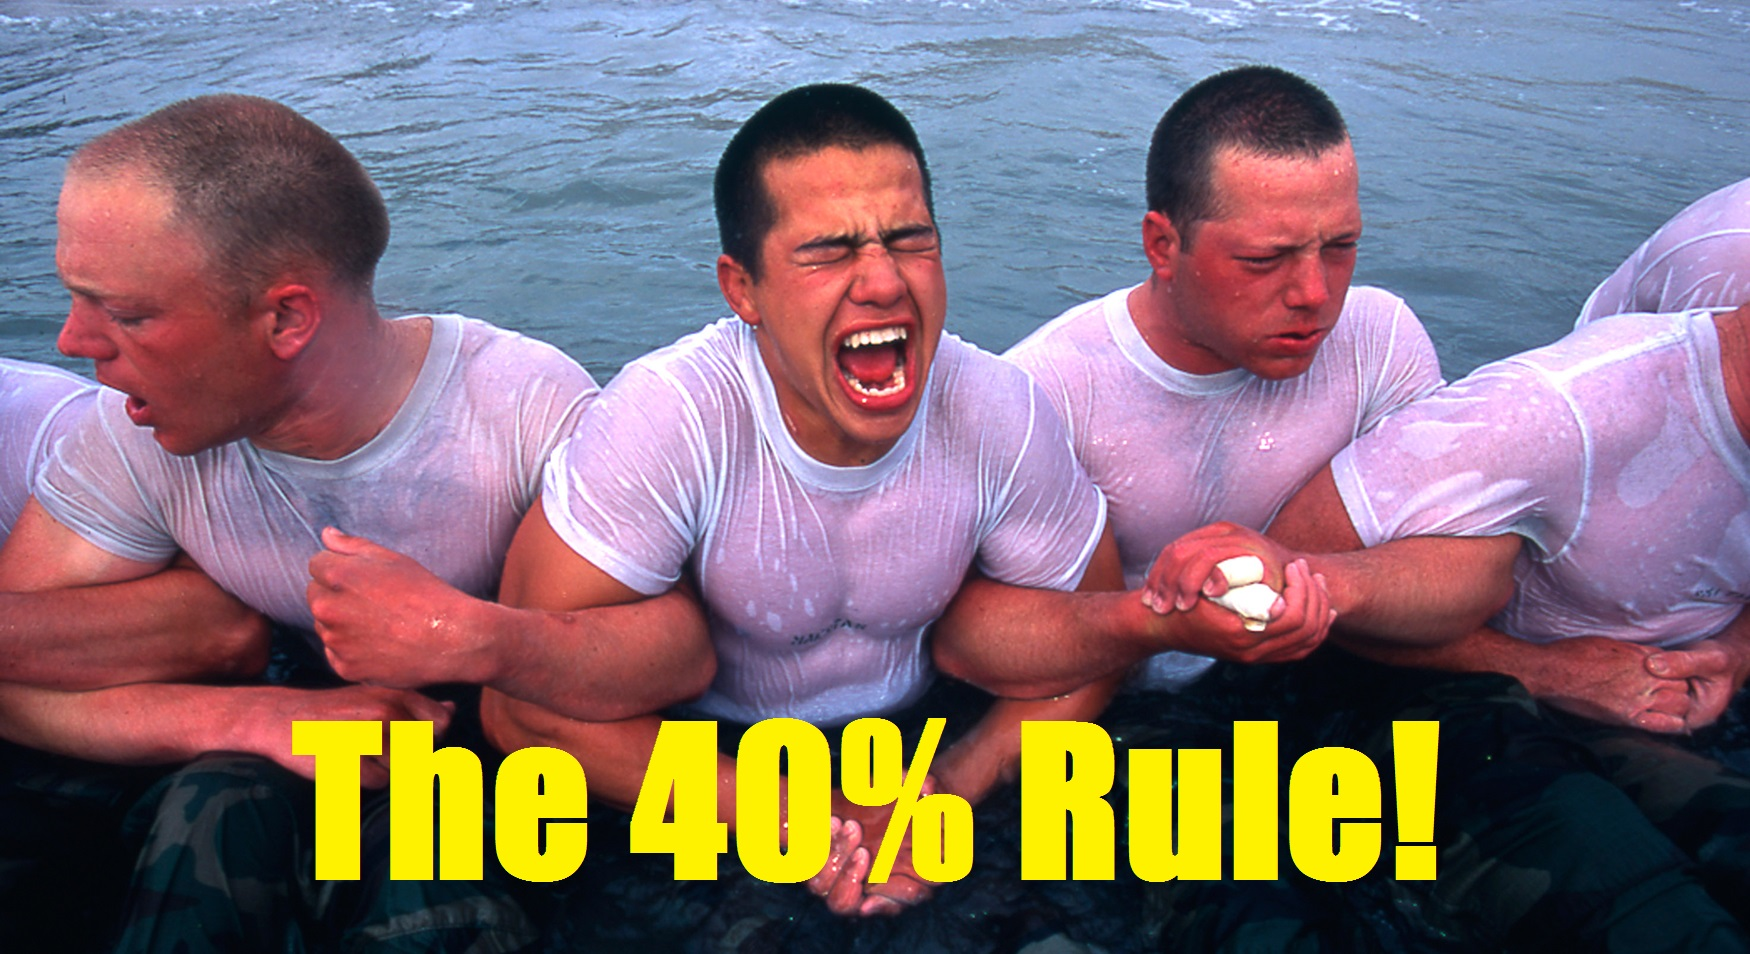 The 40 Percent Rule